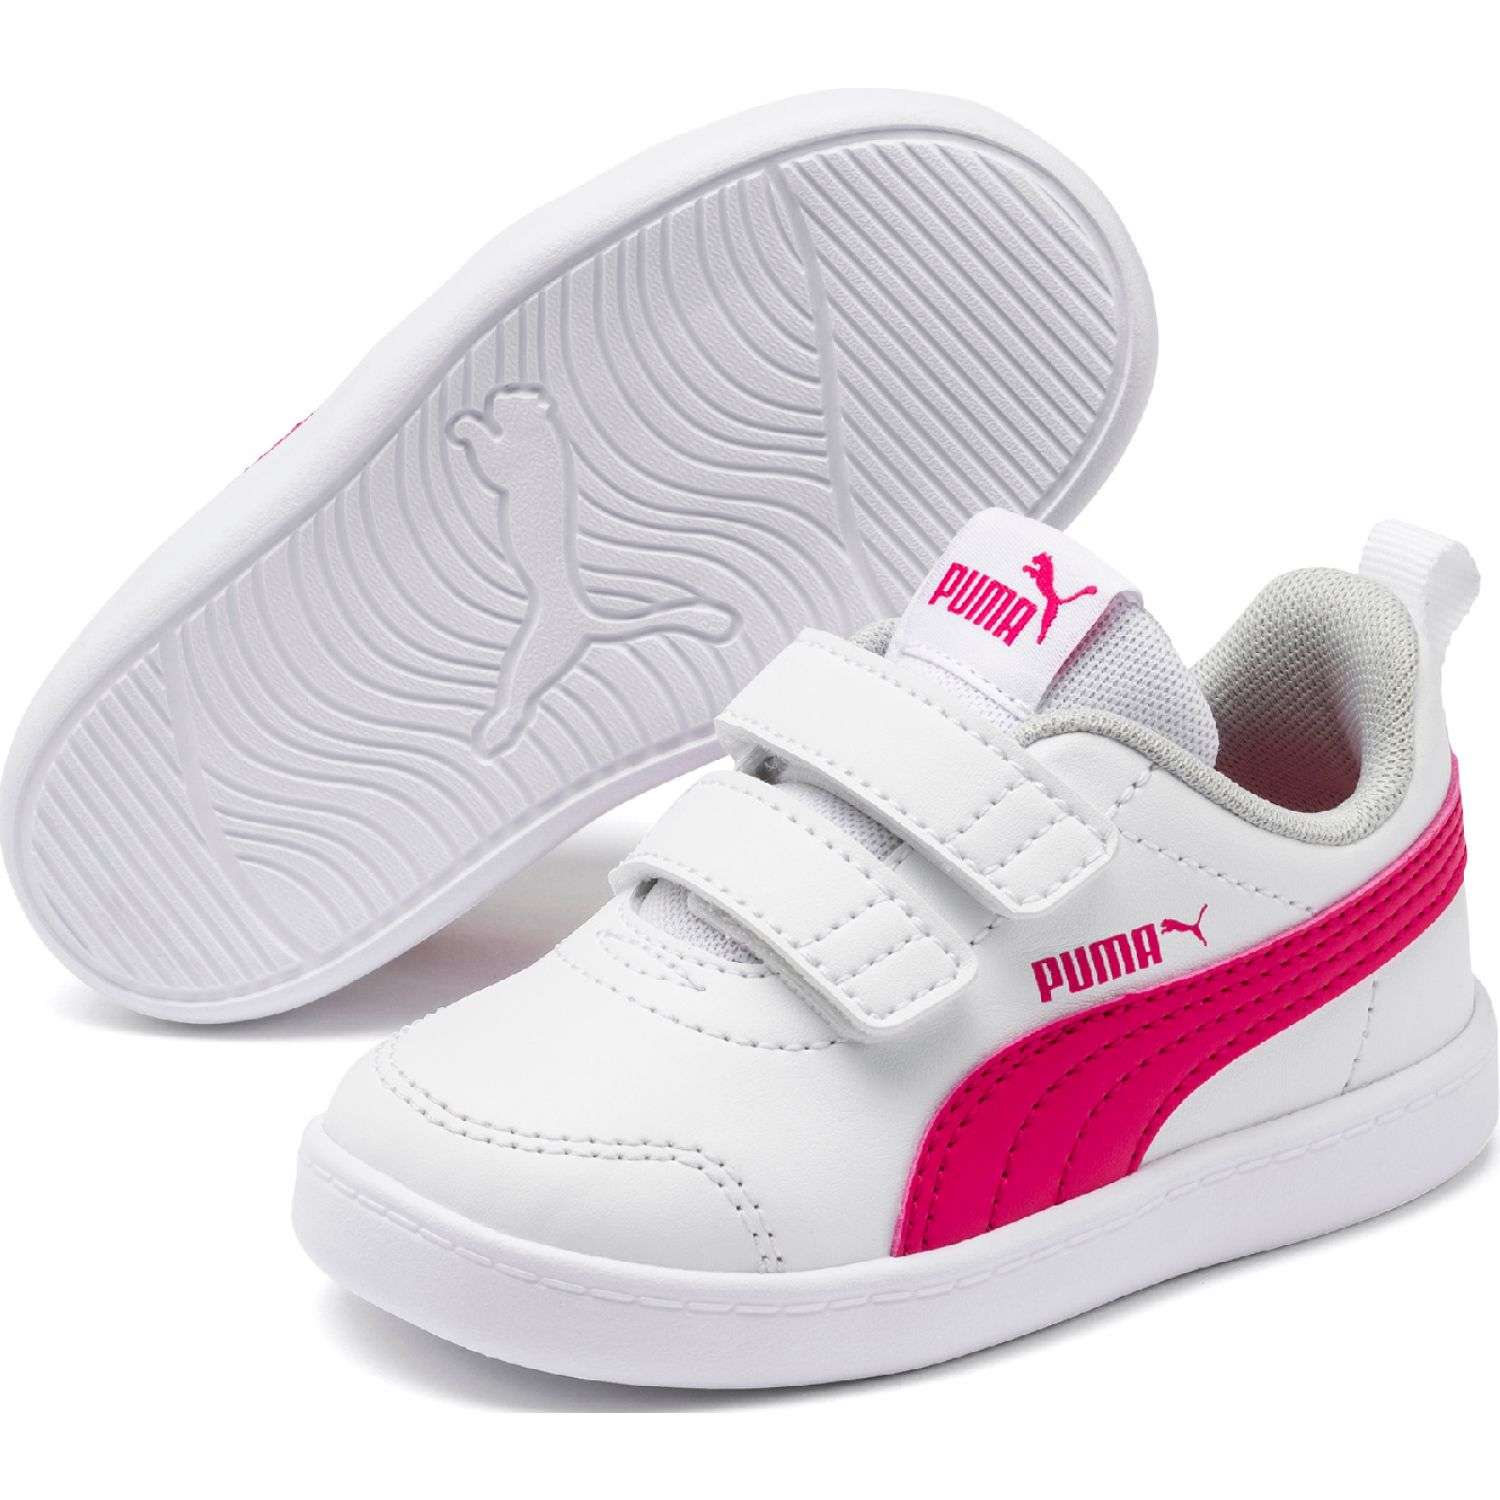 Puma courtflex v2 v inf Blanco / fucsia Walking